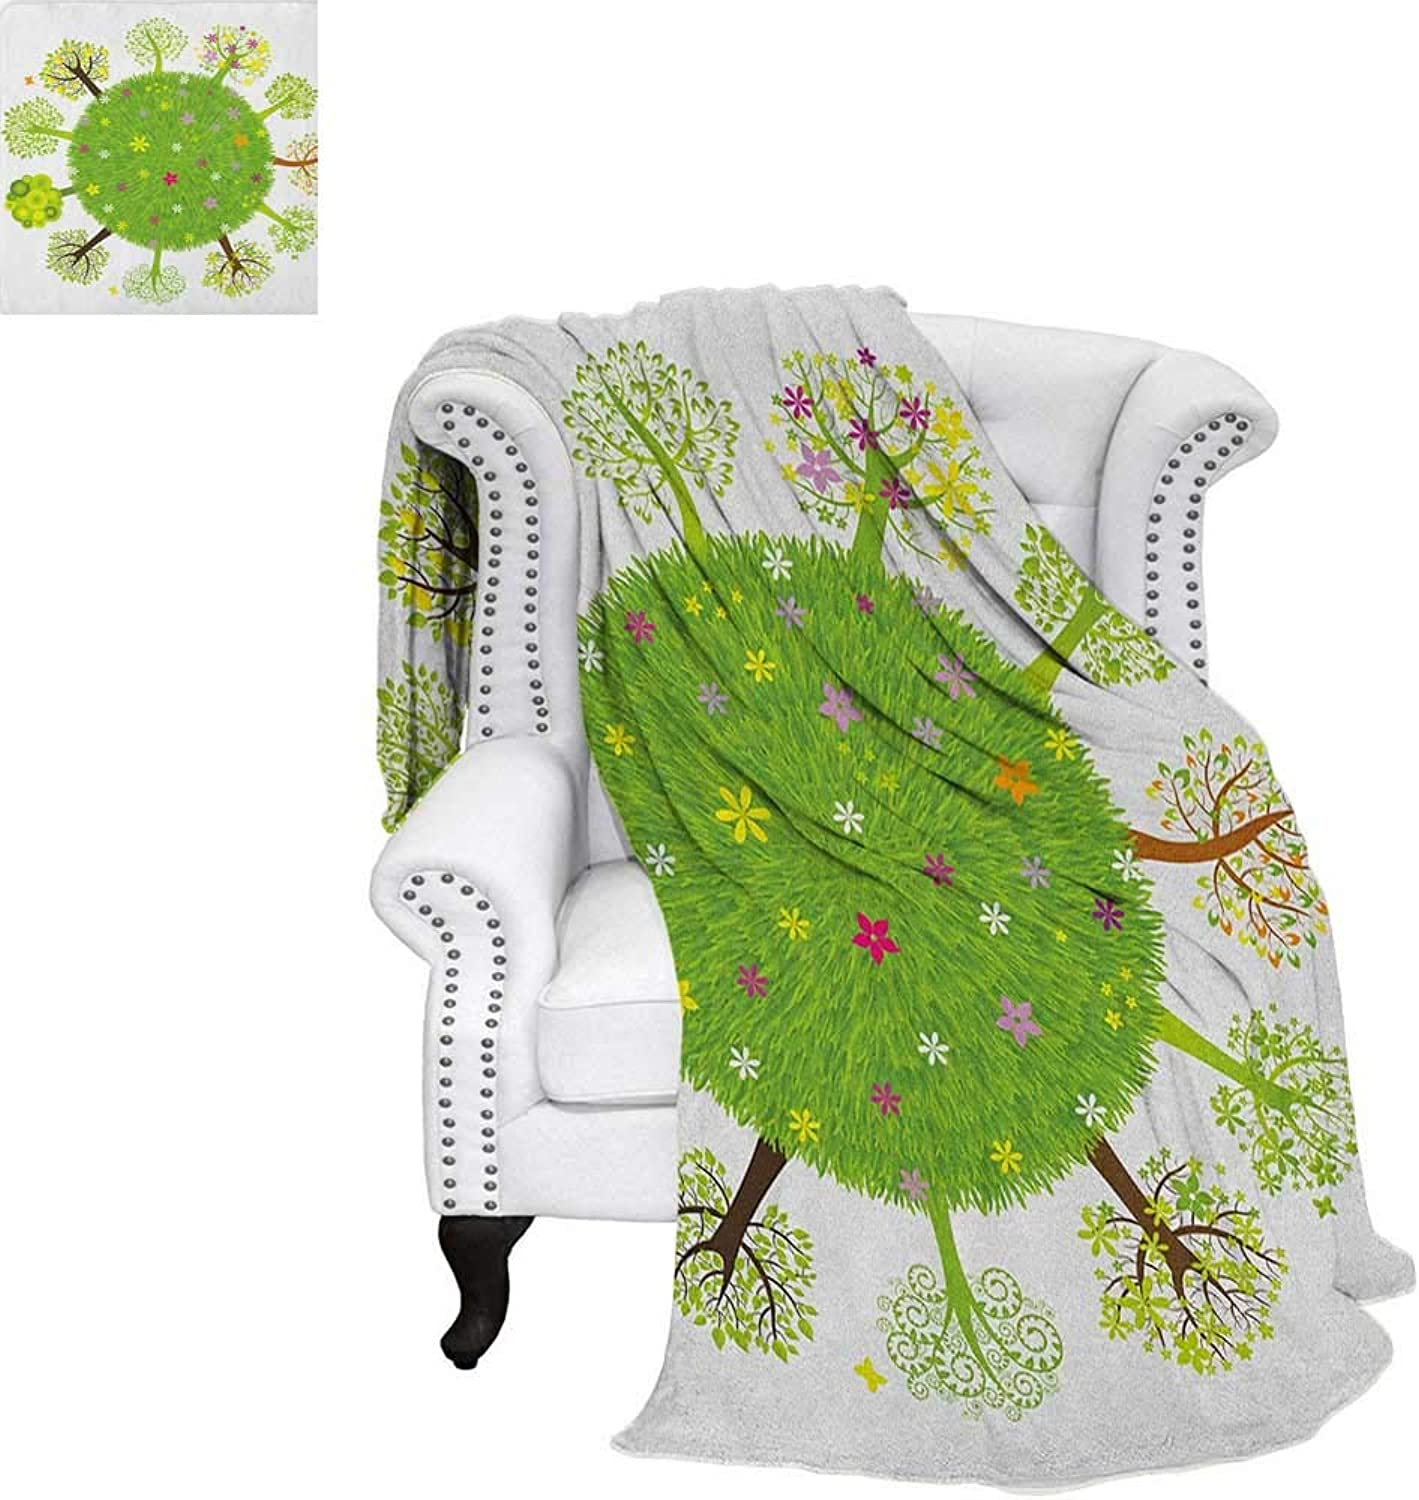 Earthsmall blanketVarious Green Trees Around The World in Full Blossom Spring Season Eco Planet Flowersthin Blanket 60 x50  Multicolor